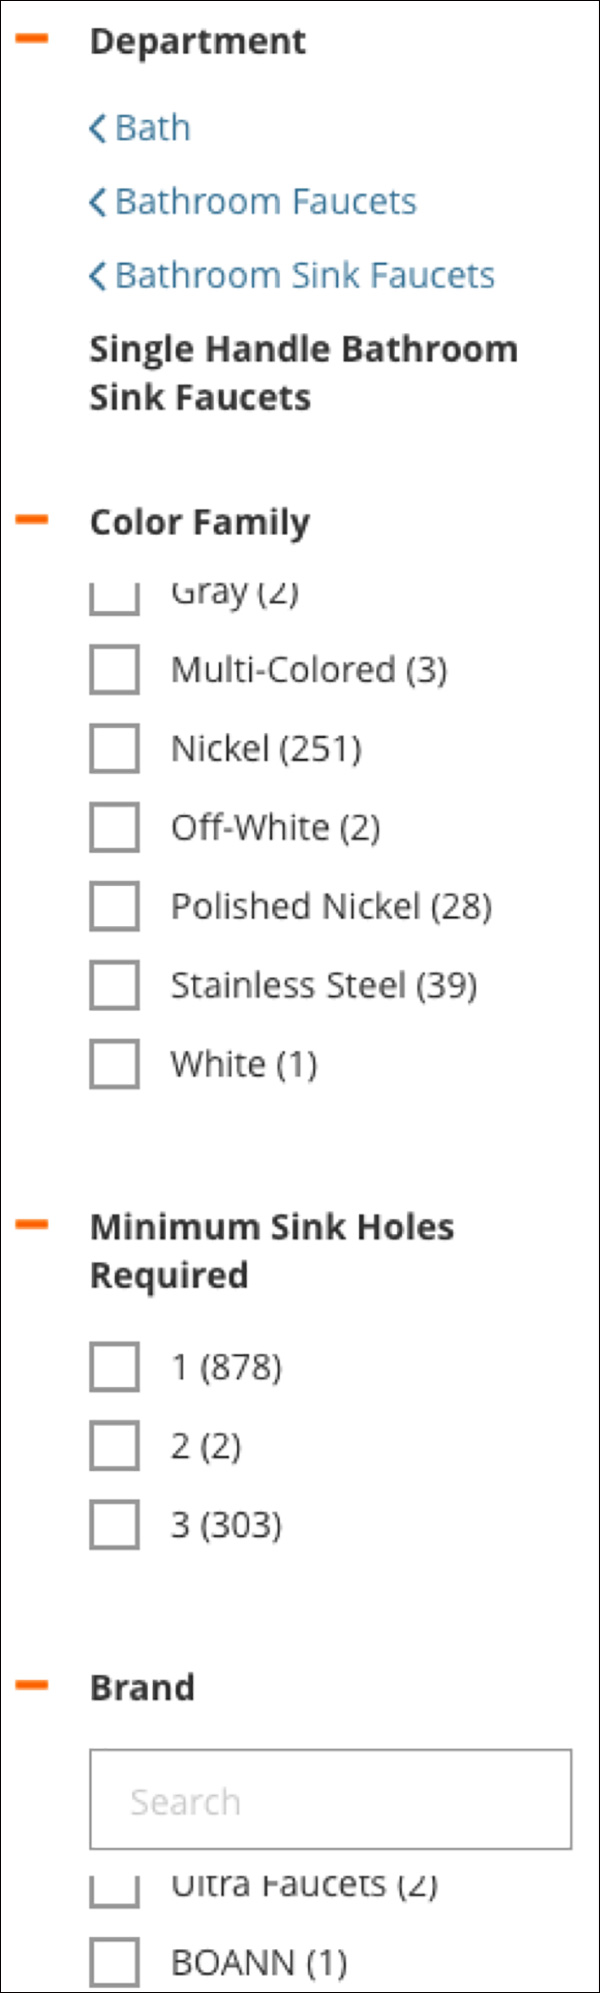 Home Depot filtering options